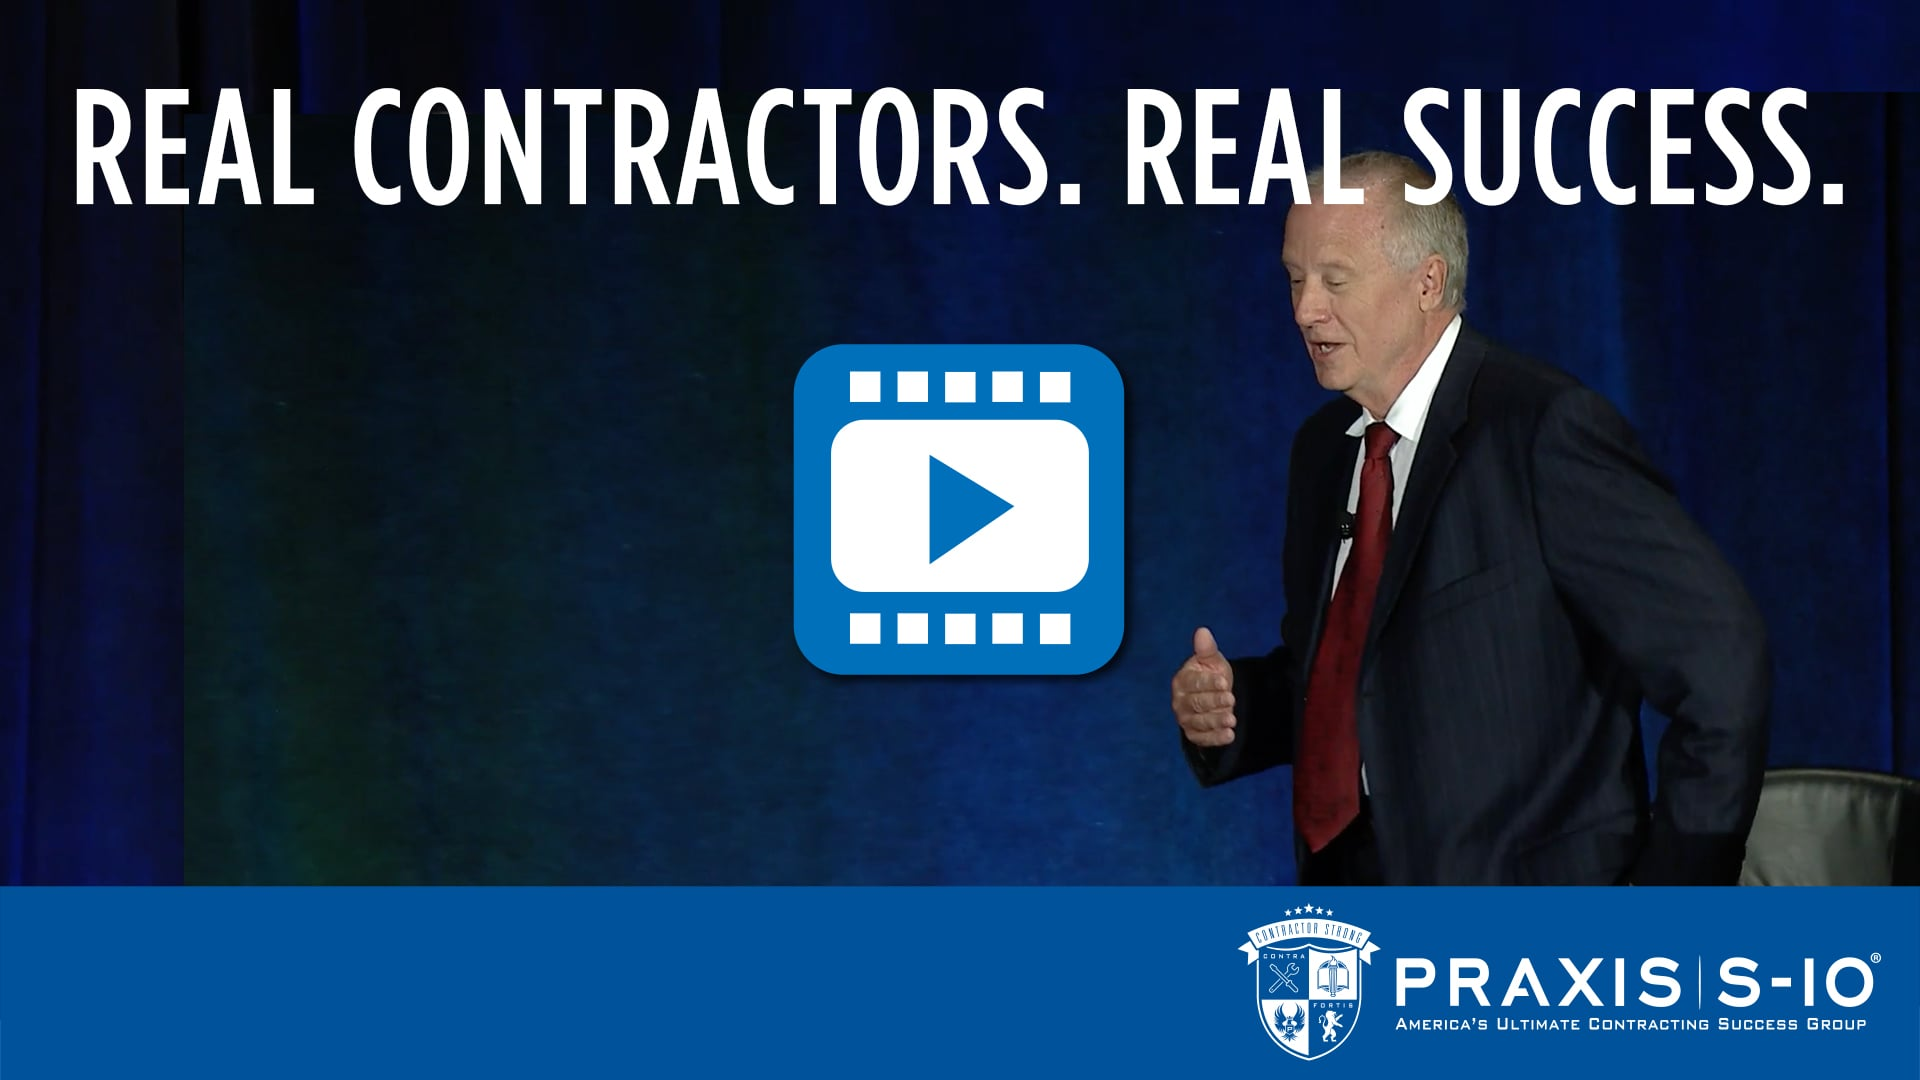 Real Contractors, Real Businesses, Real Success